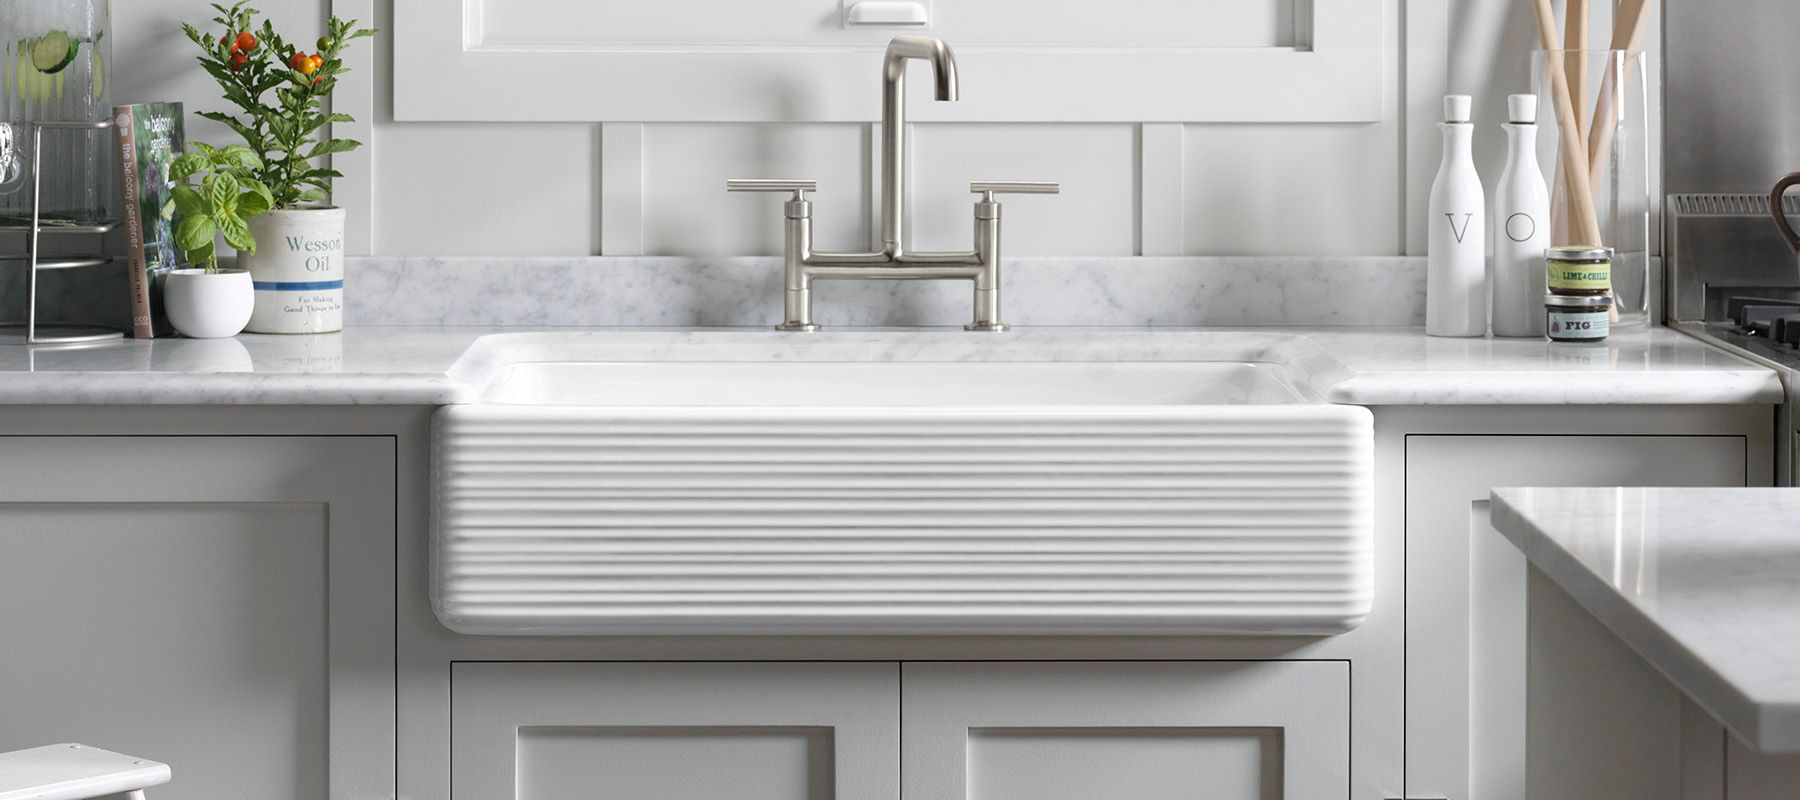 Kitchen Sinks | Kitchen | KOHLER on kohler fireclay sinks, white undermount bar sinks, single bowl kitchen sinks, elkay fireclay sinks, franke fireclay sinks, rohl sinks, ferguson sinks, square undermount bathroom sinks, stainless steel kitchen sinks,